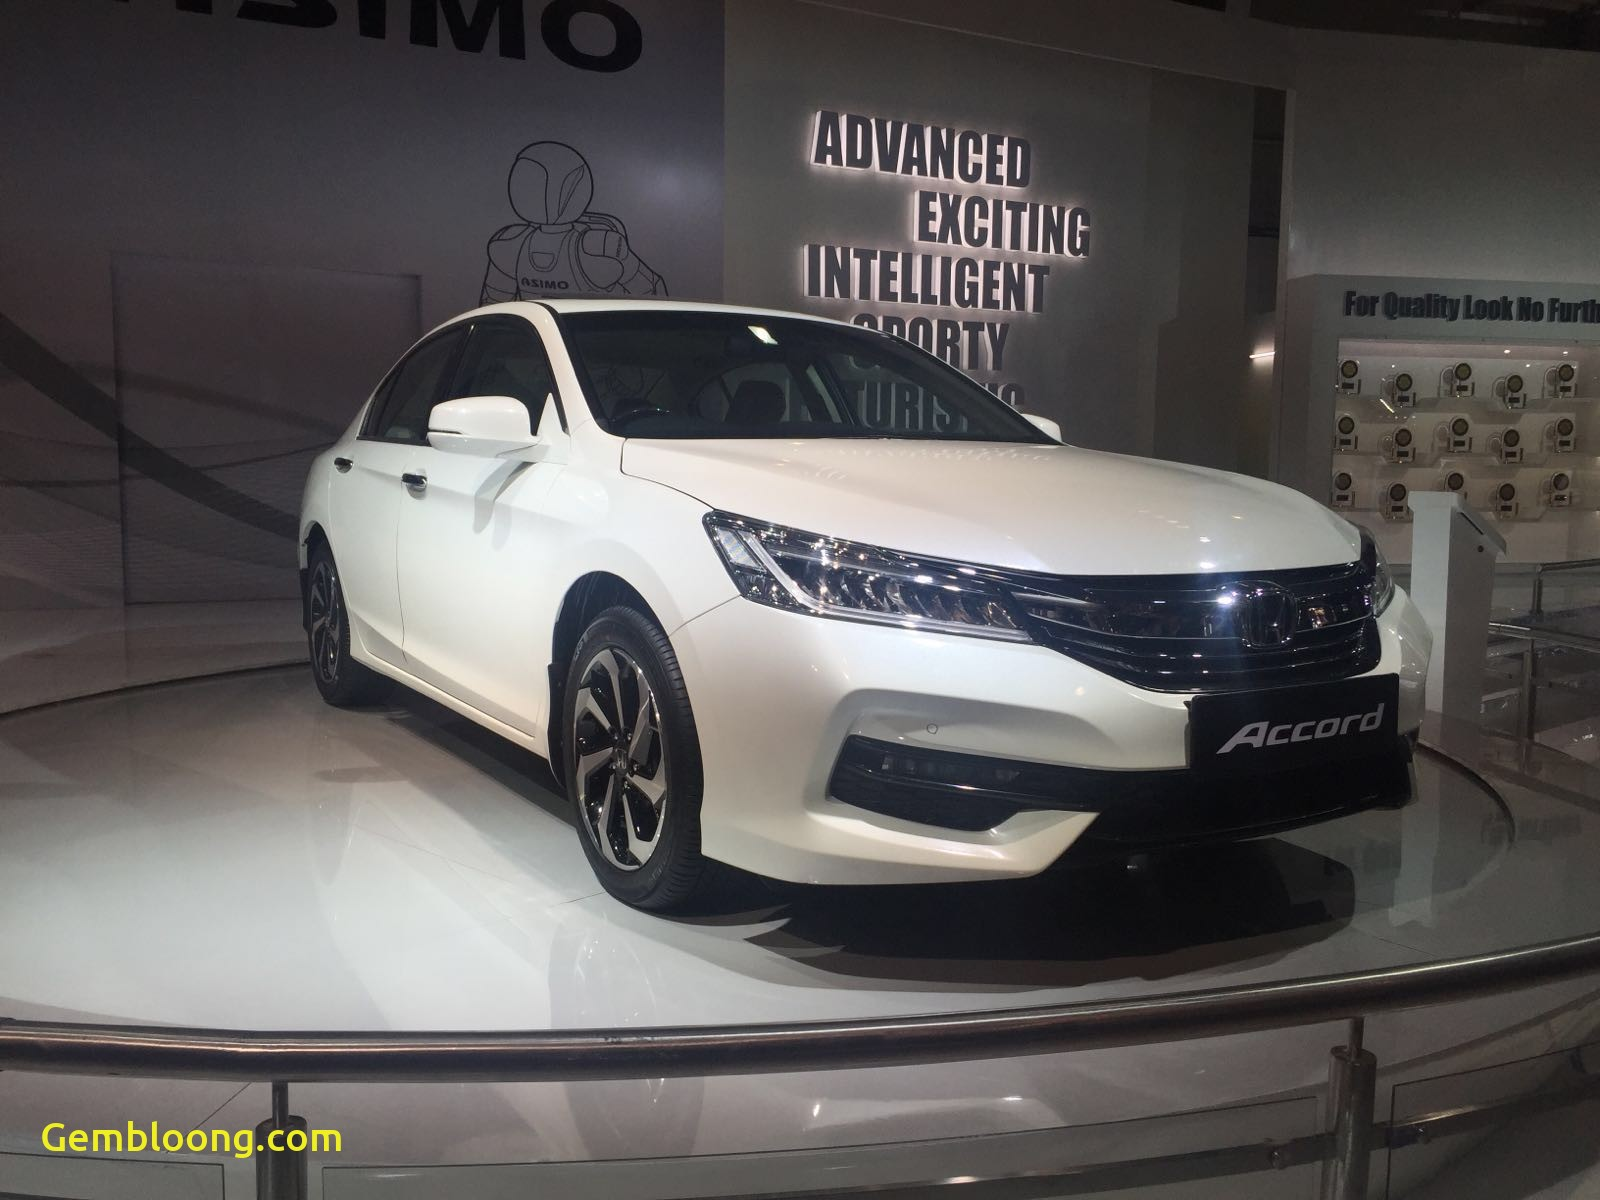 Accord 2016 Elegant Honda Accord 2018 Honda Accord Price In India 2018